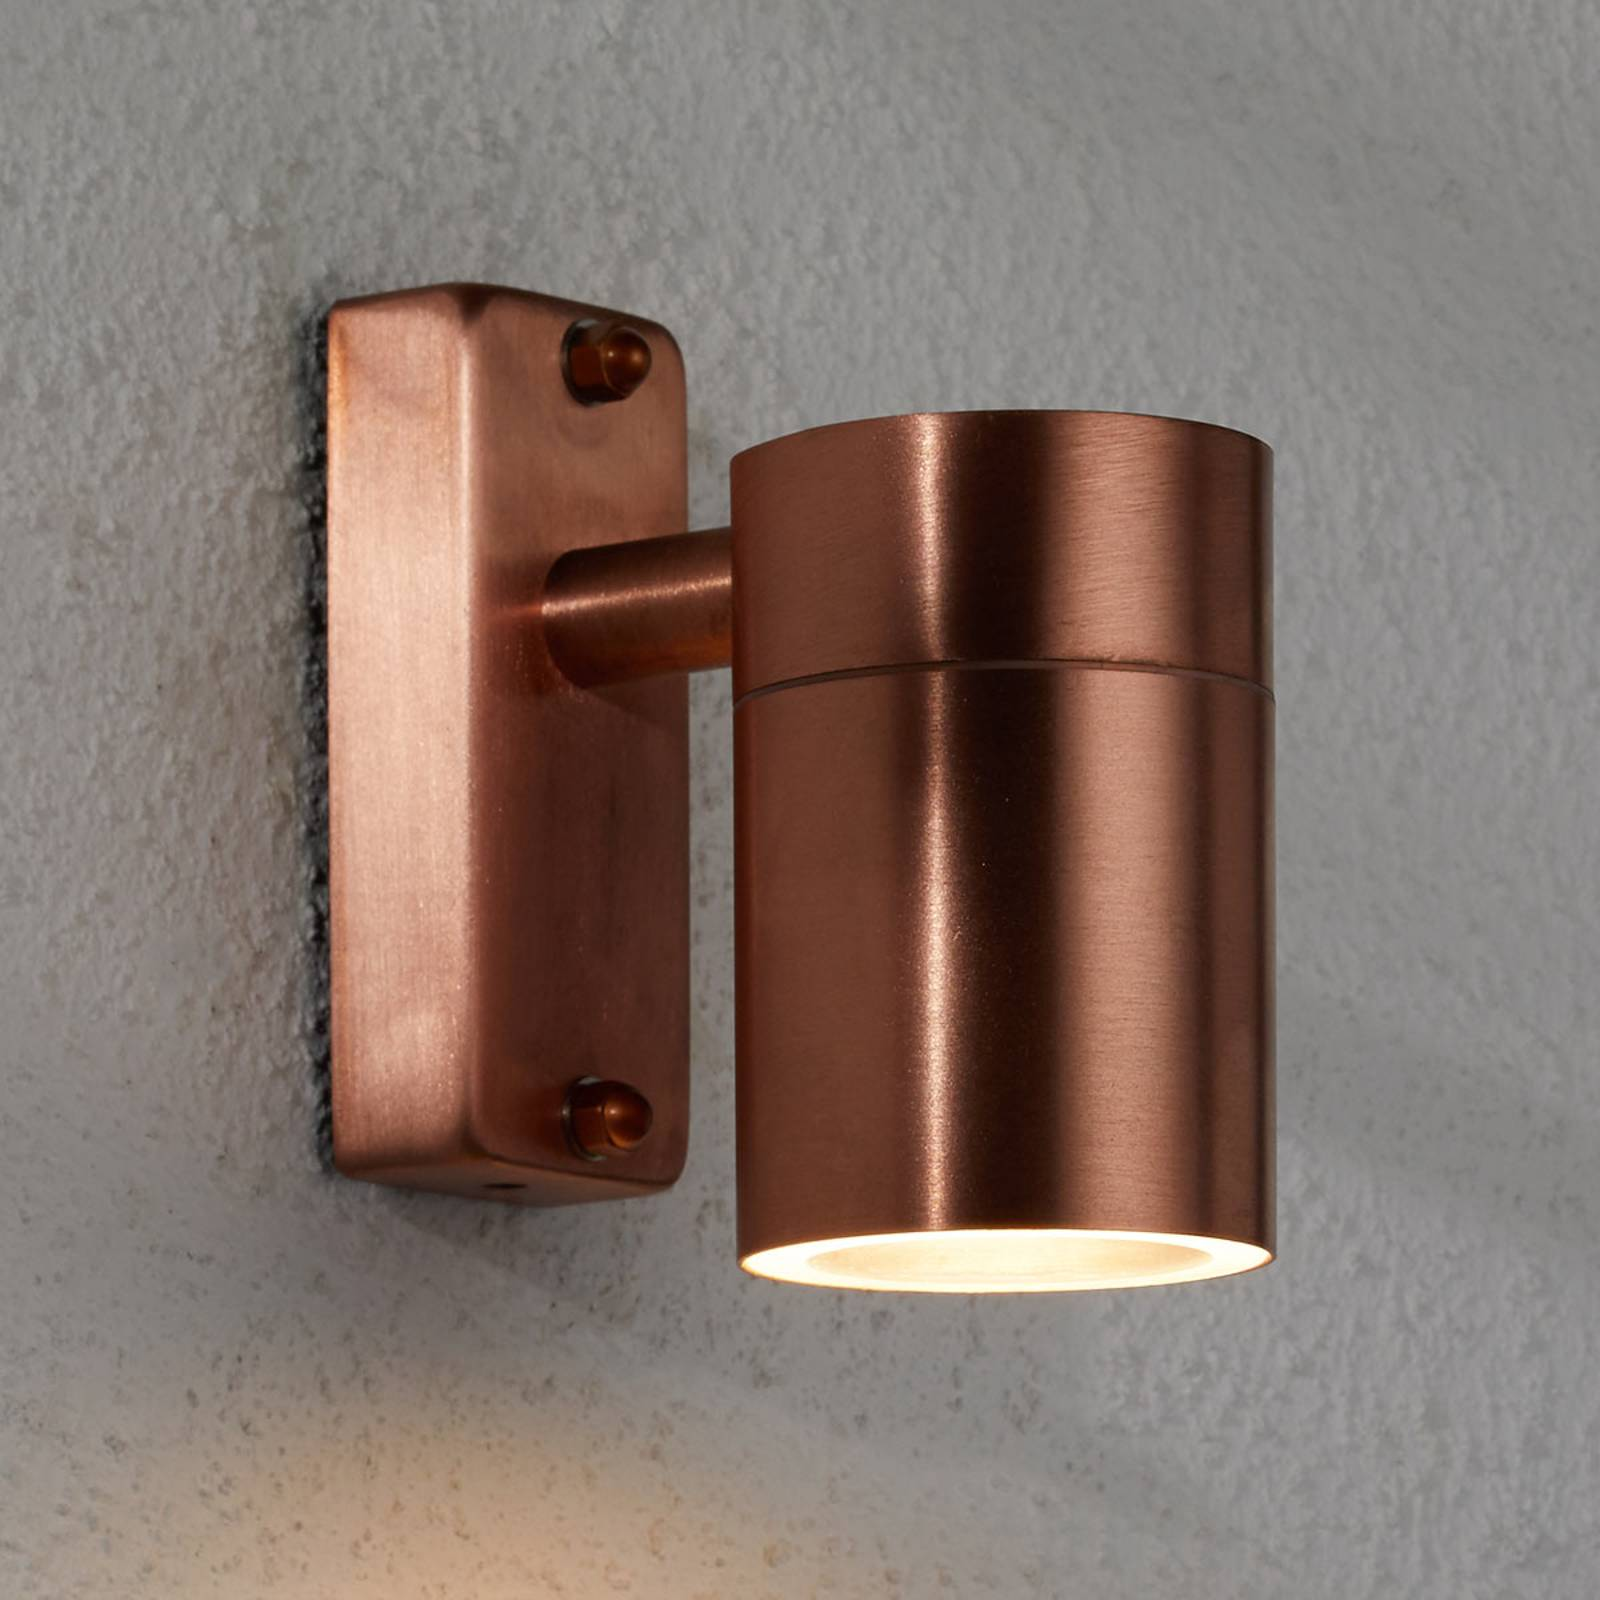 Modern copper outdoor wall lamp Tin from Nordlux